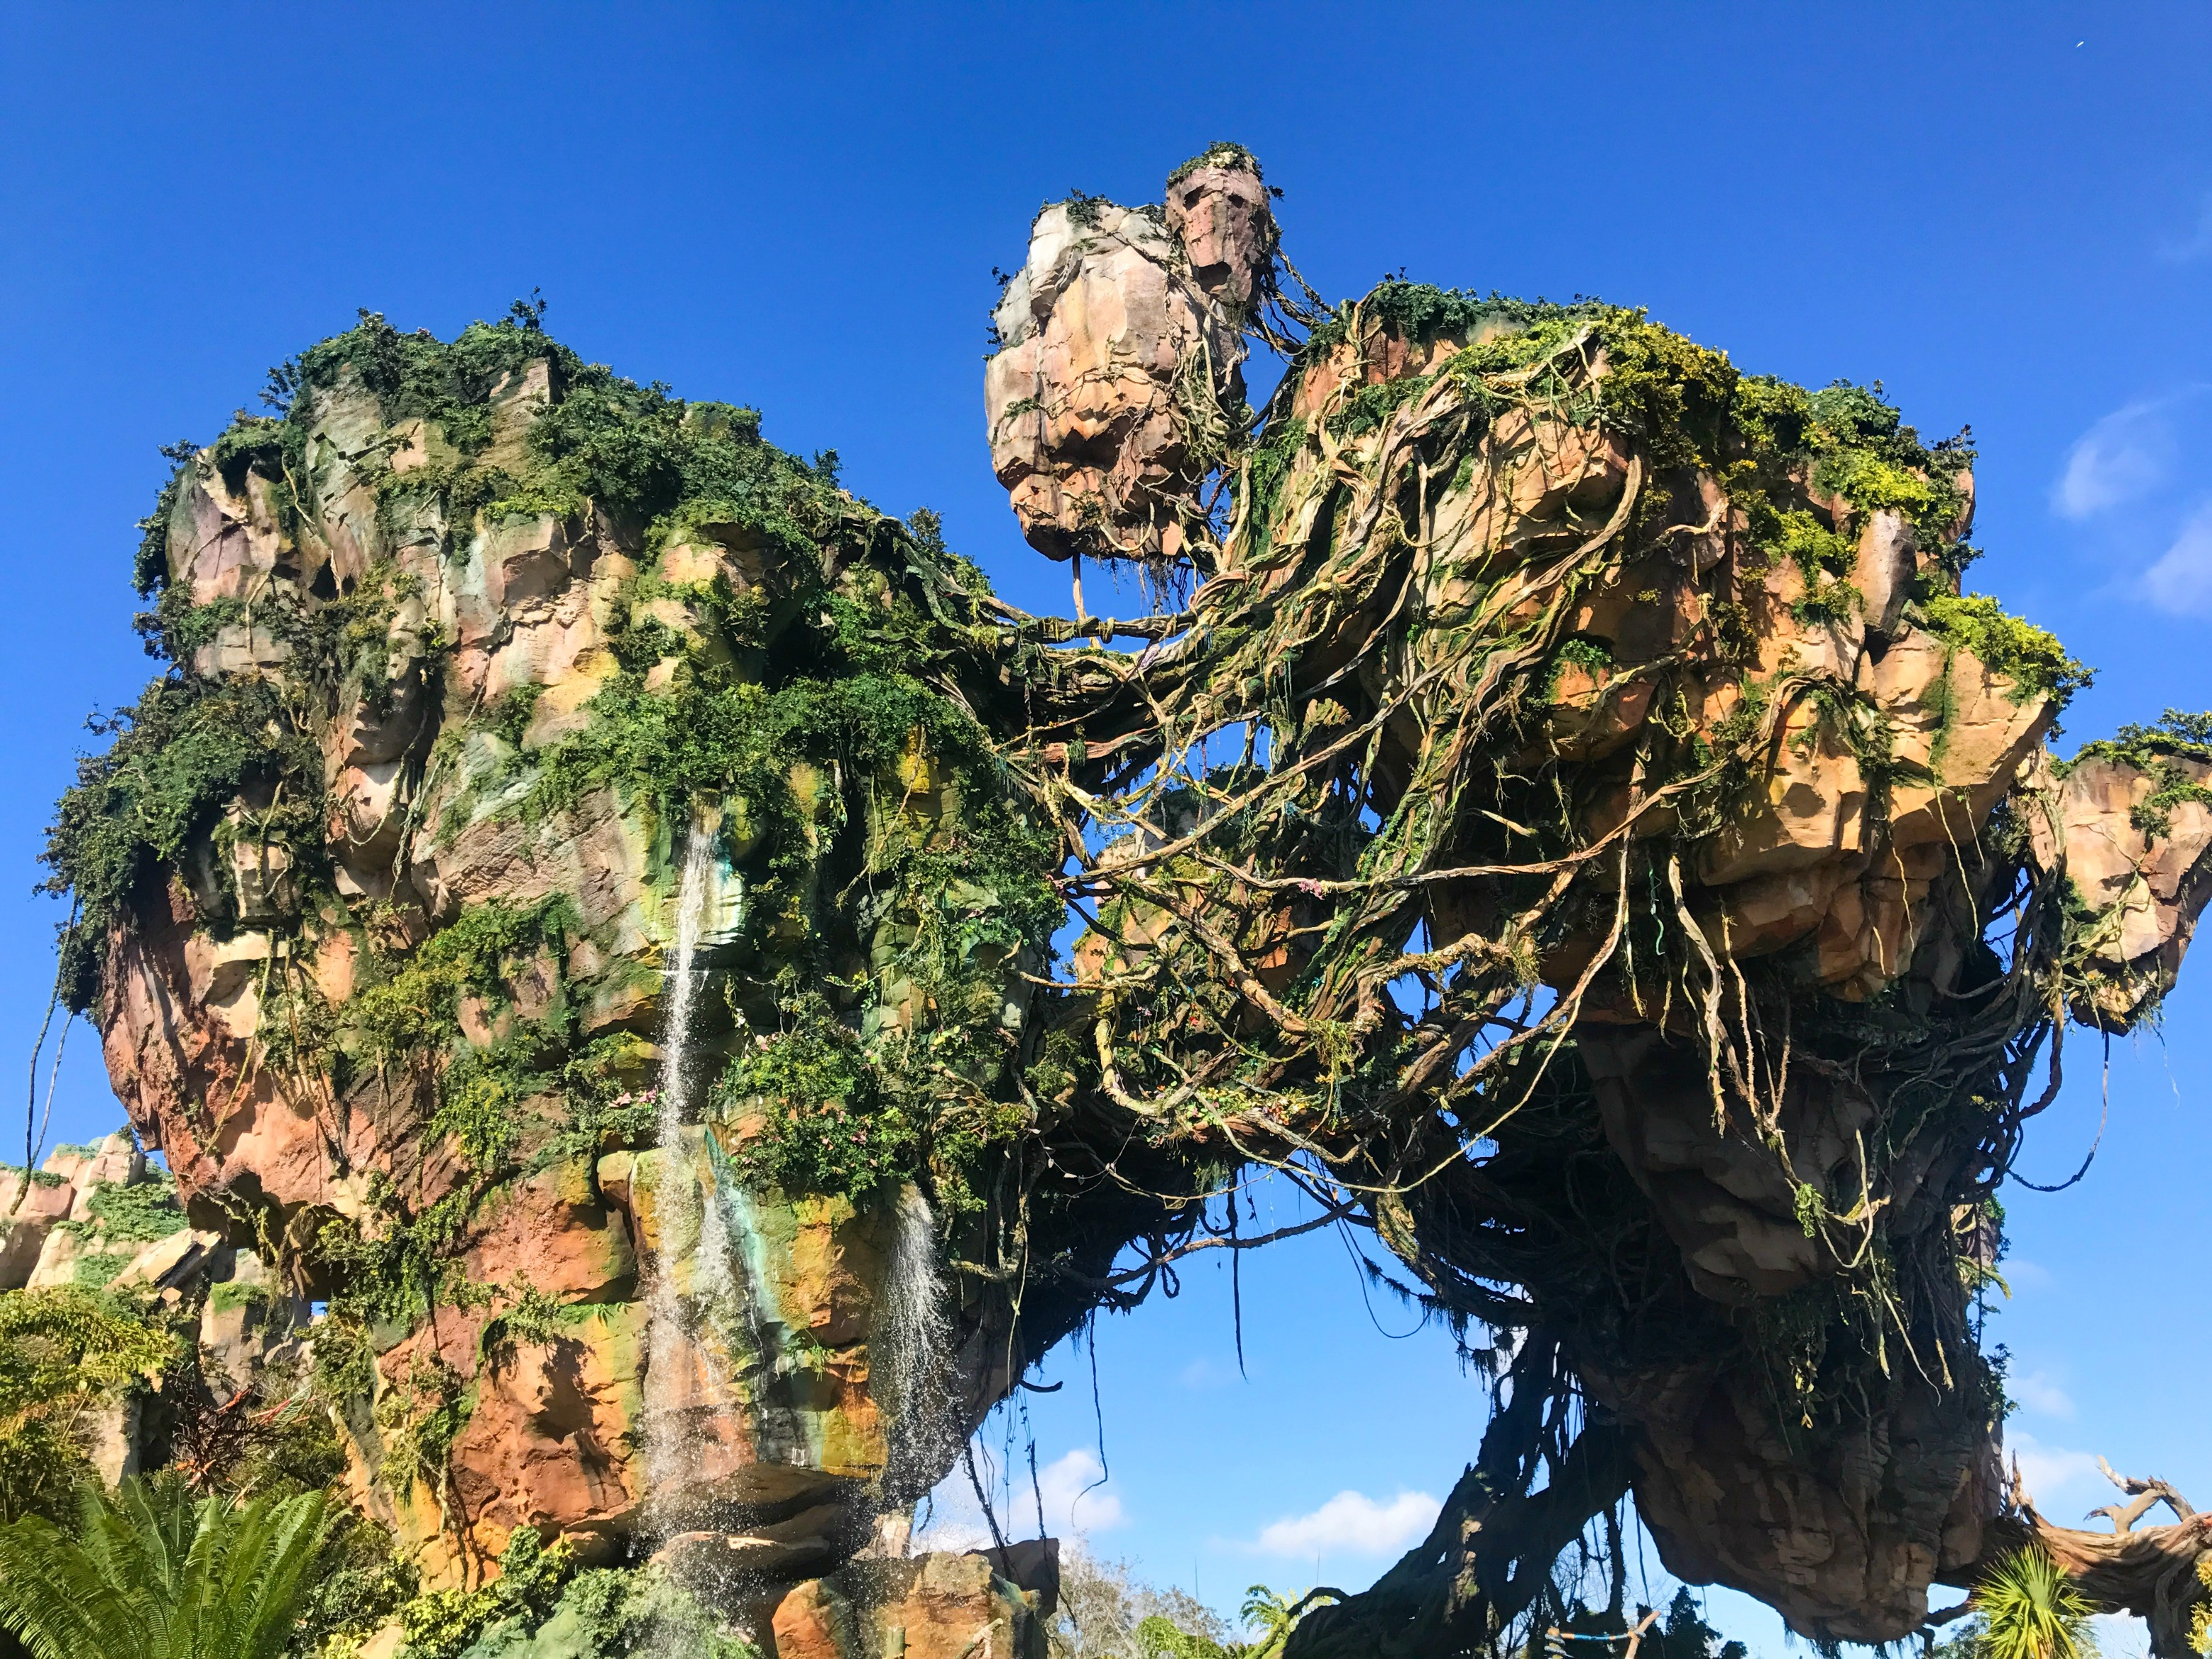 Pandora The World of Avatar - Everything You Need to Know BEFORE You Go